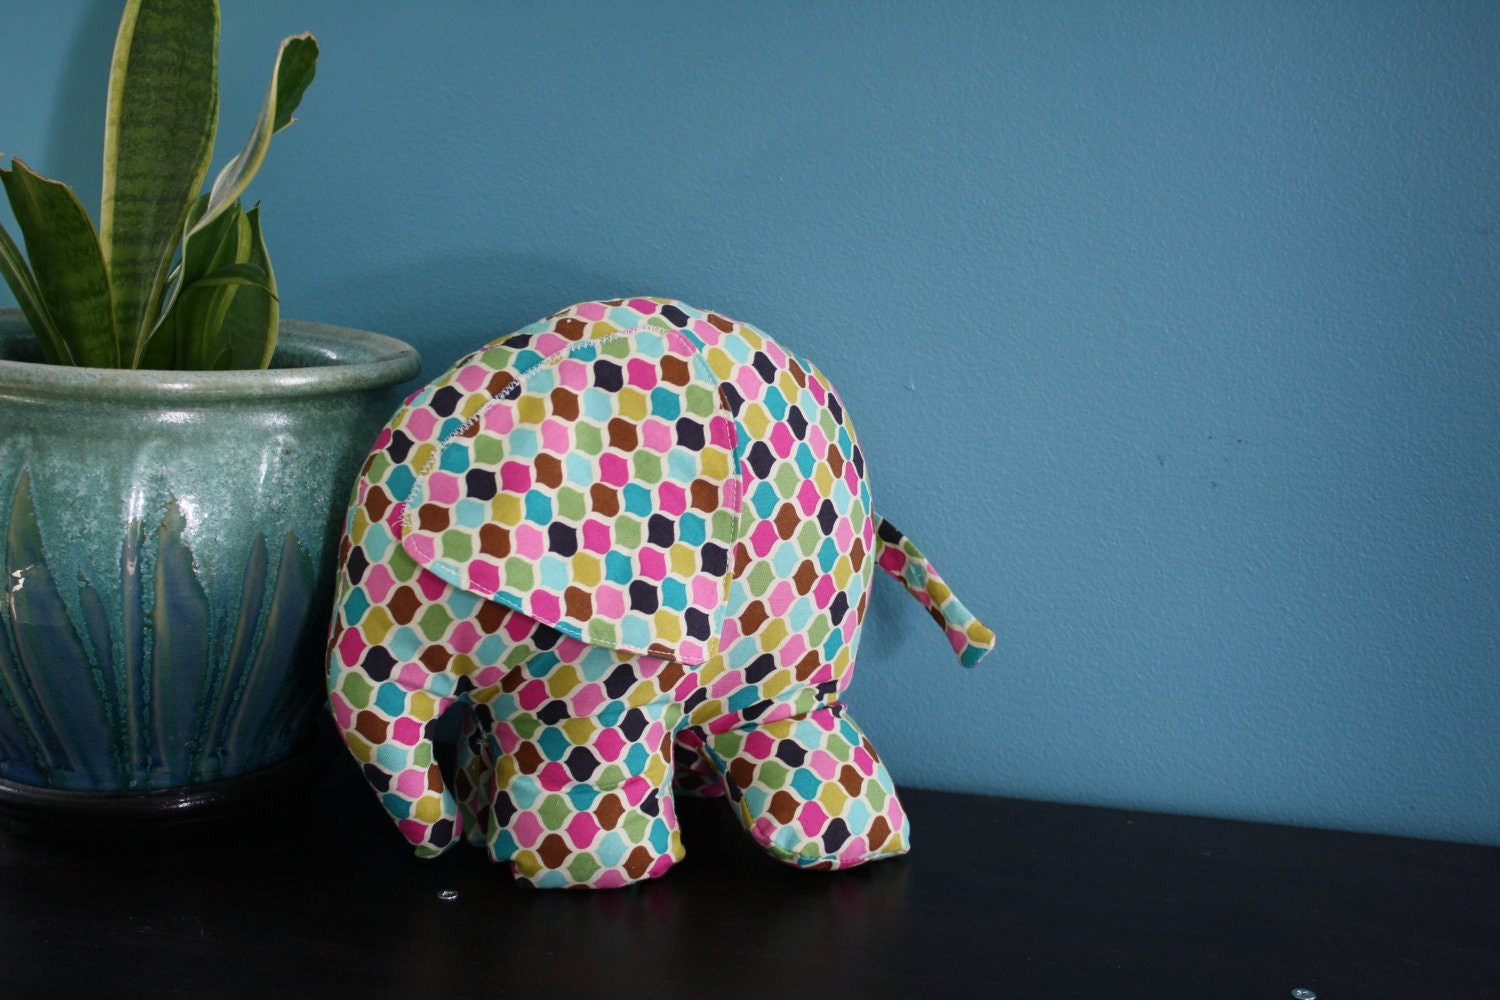 The perfect, imperfect Stuffed Elephant